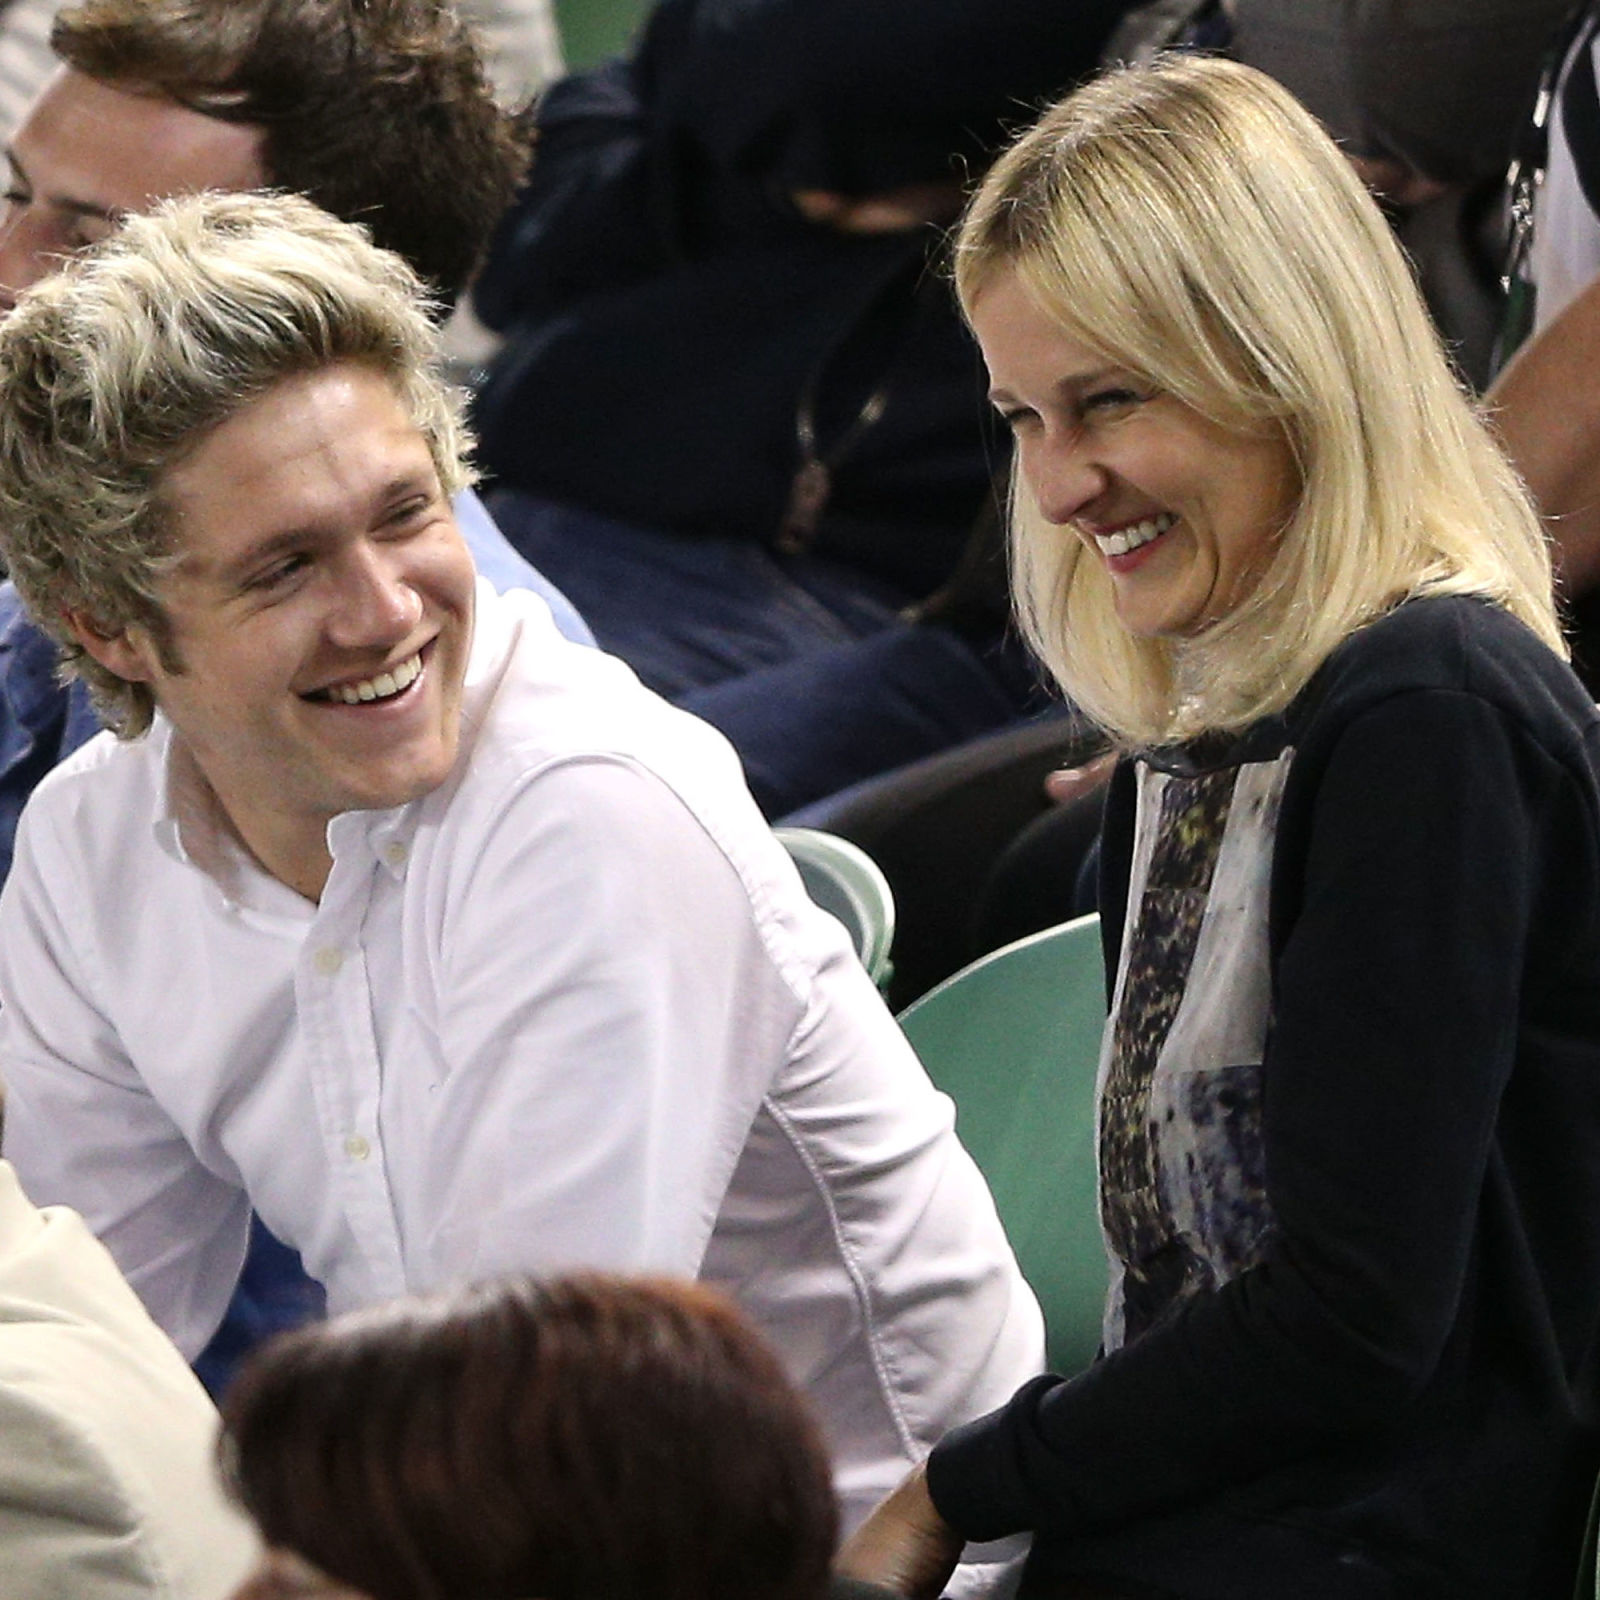 Niall Horan's too sexy for his shirt at the Australian Open